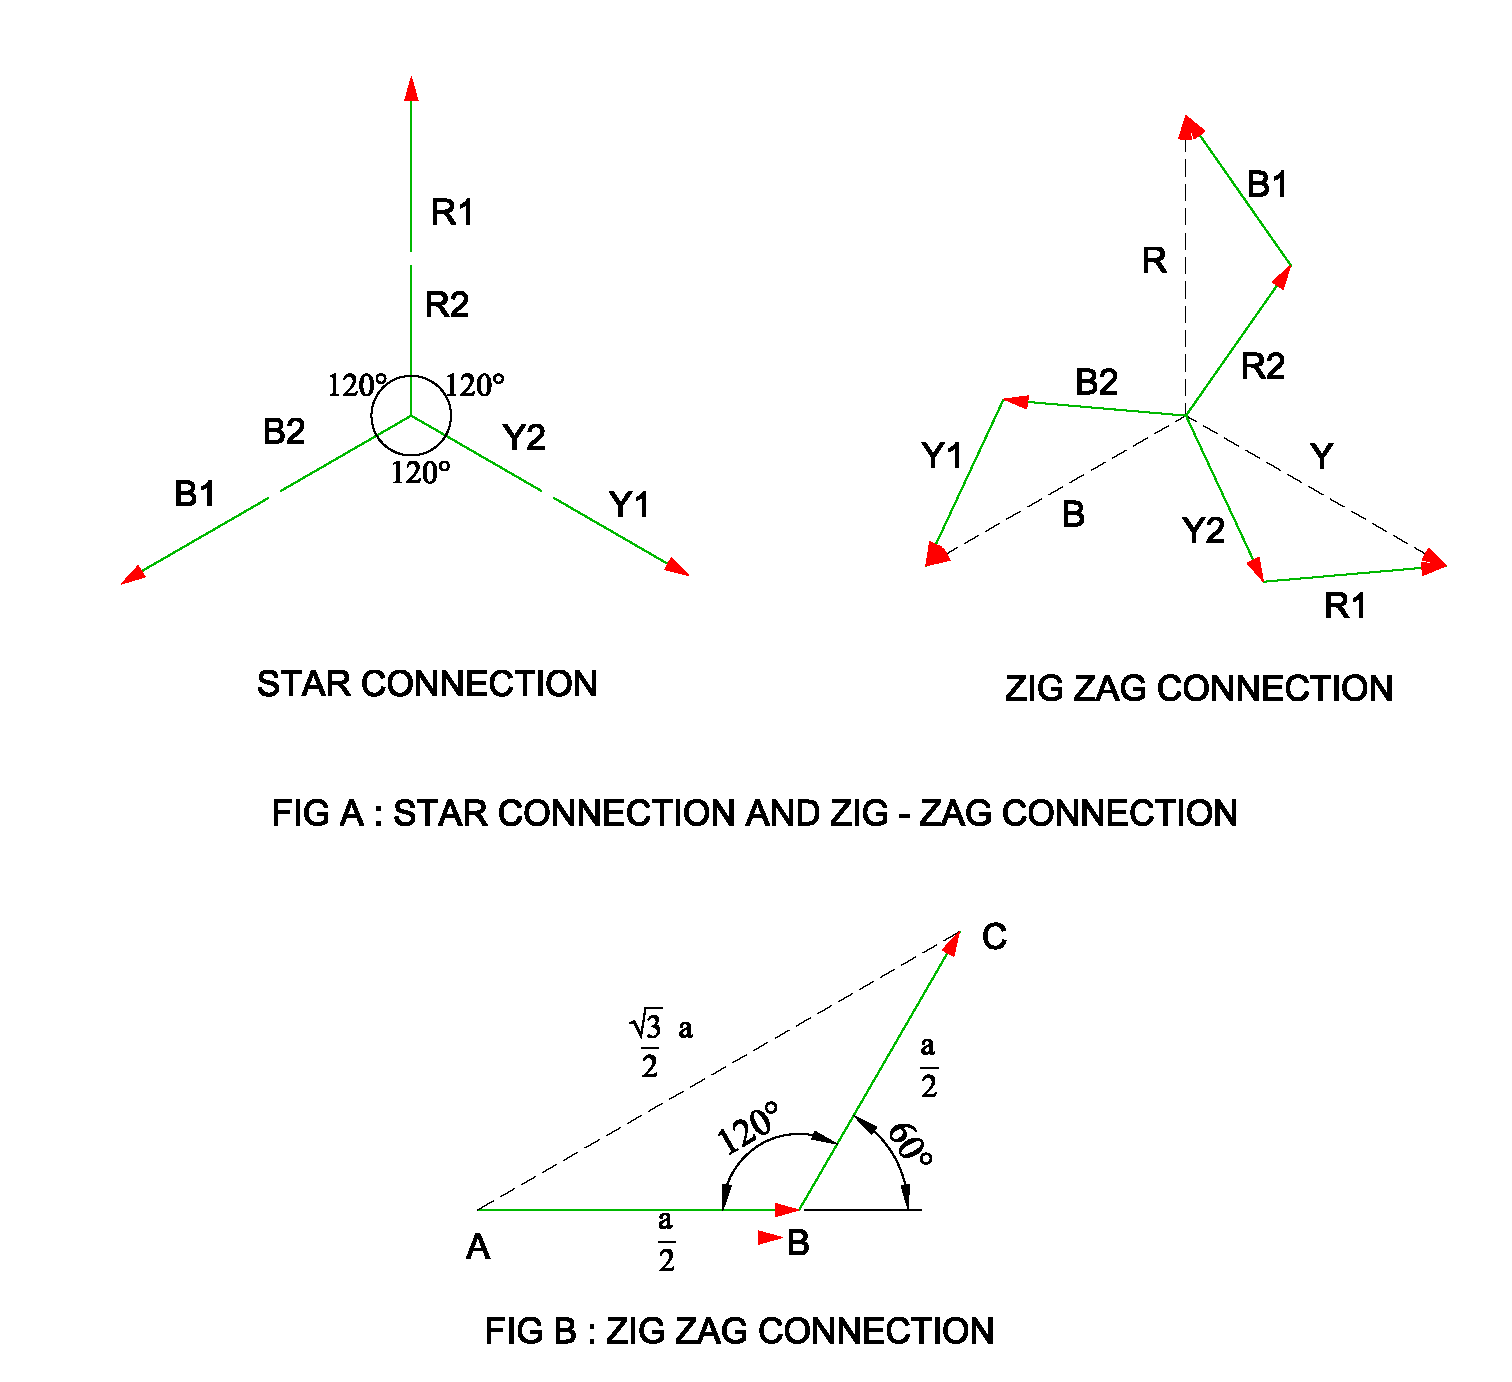 hight resolution of fig a shows star connection in which each phase consists of two windings in order to convert this winding into zig zag connection